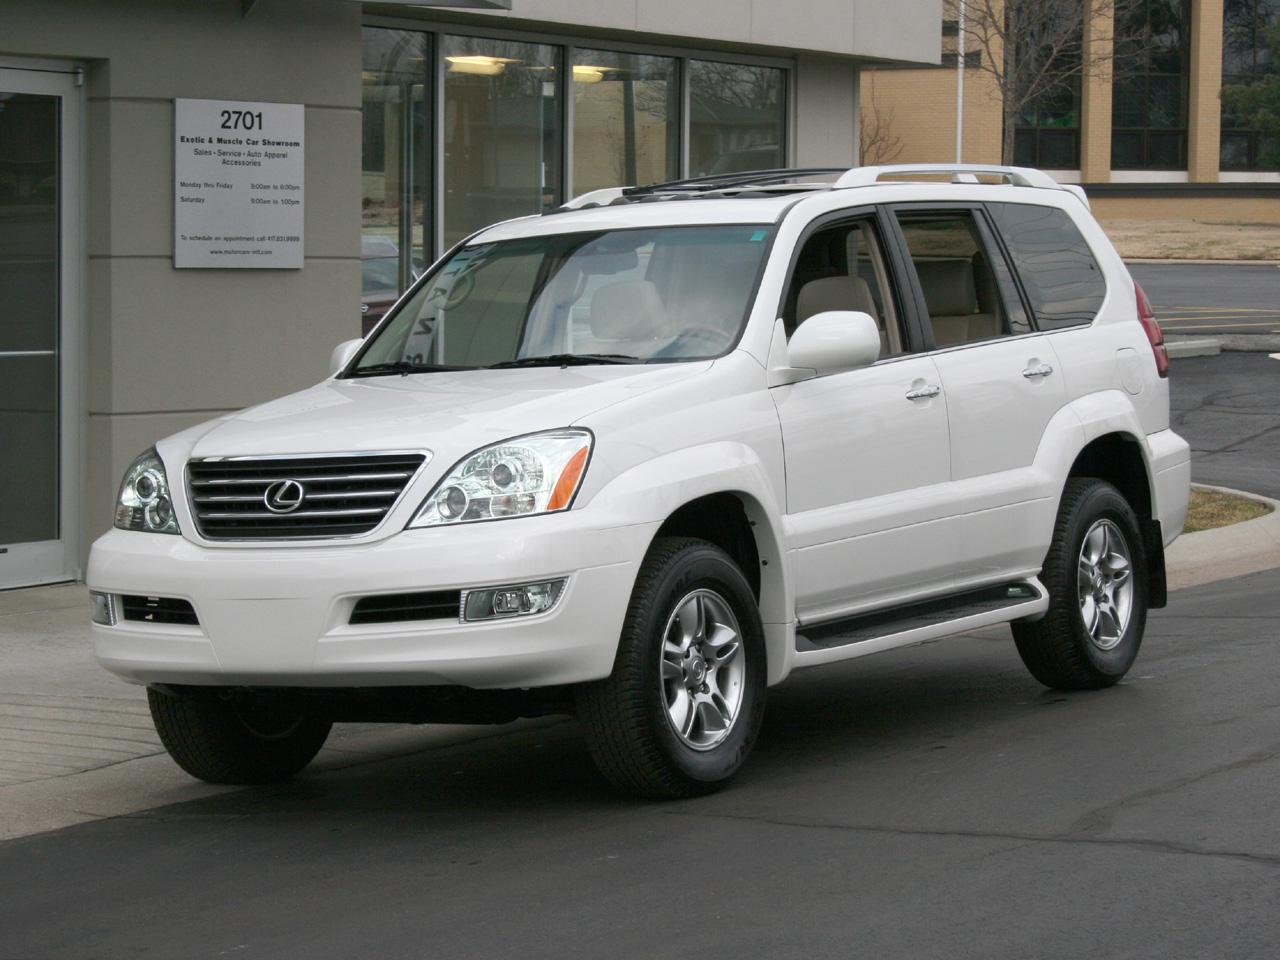 used lexus gx 470 for sale cargurus. Black Bedroom Furniture Sets. Home Design Ideas